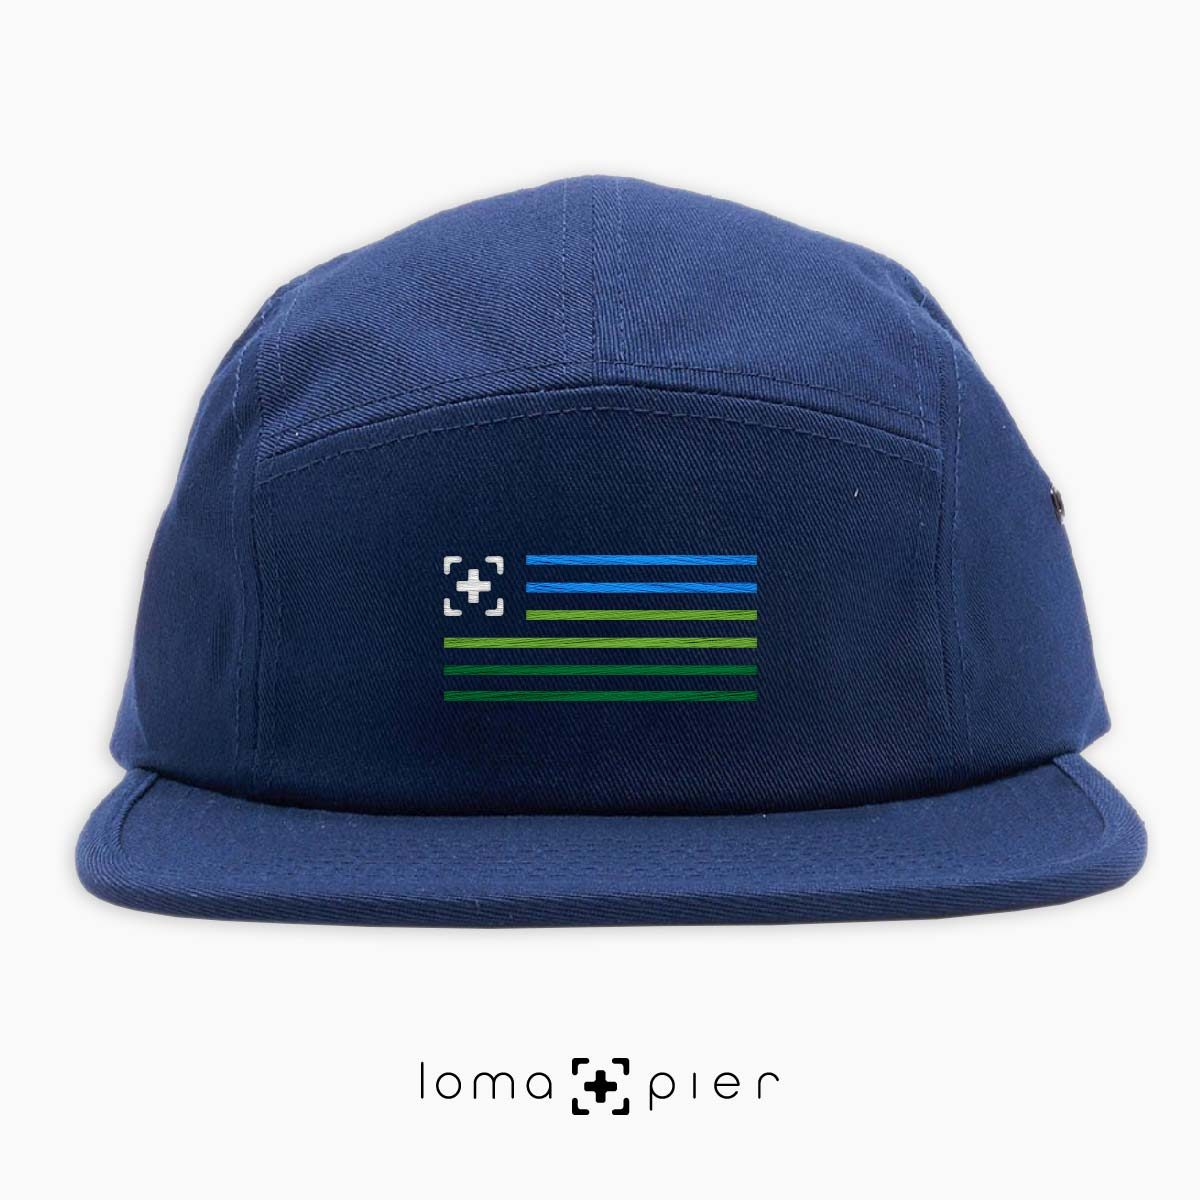 loma+stripes icon embroidered on a navy cotton 5-panel hat by loma+pier hat store